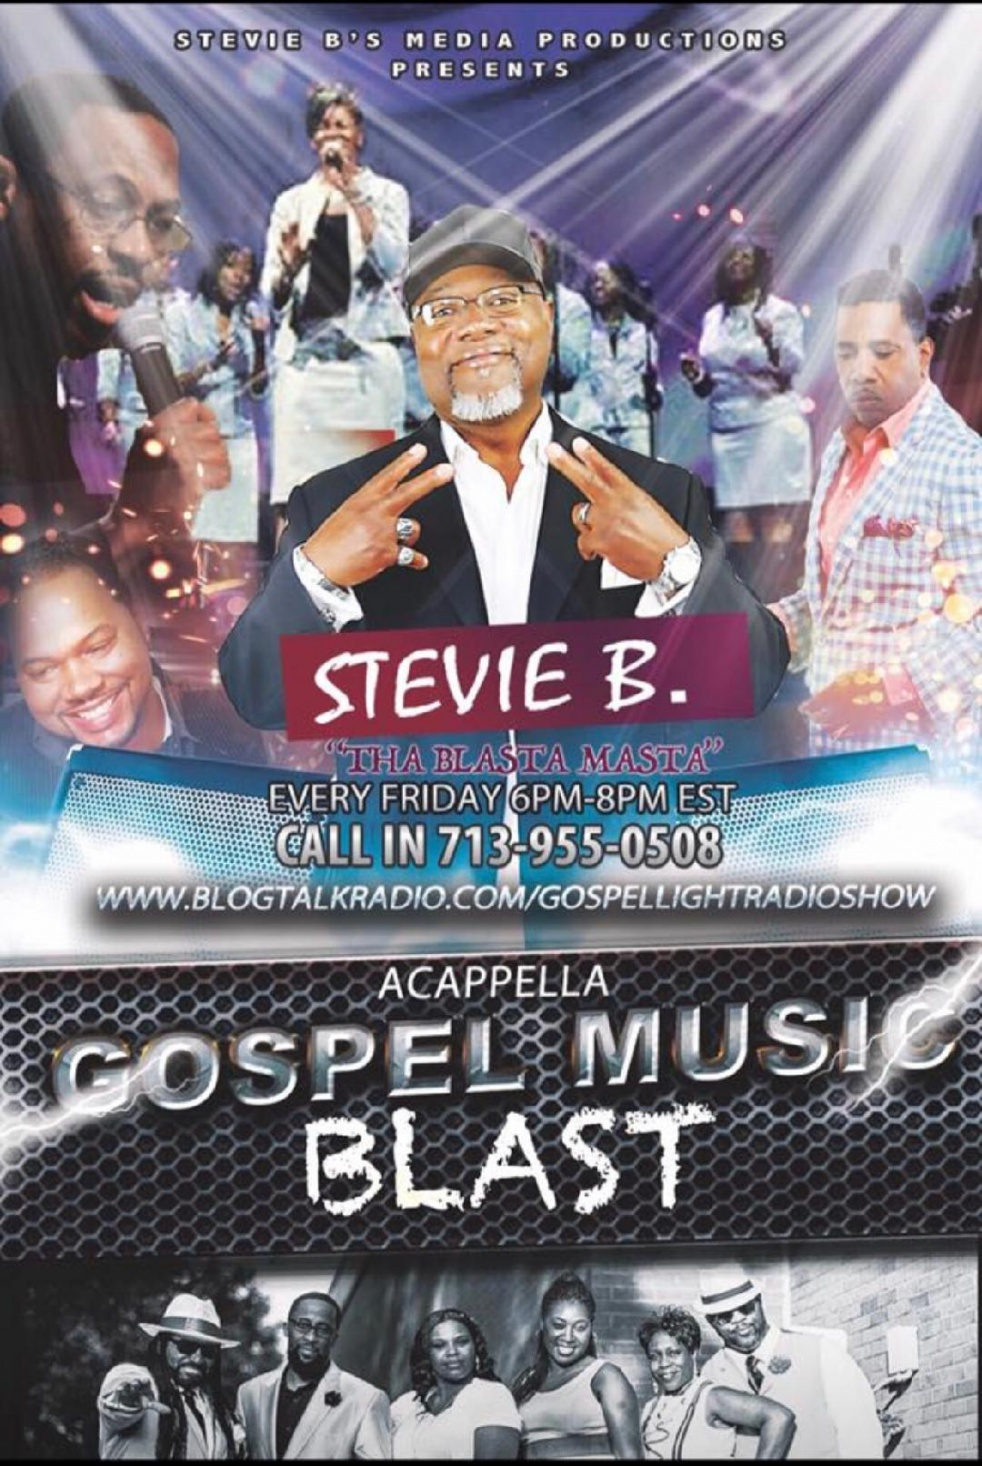 Stevie B's Media Productions - Cover Image